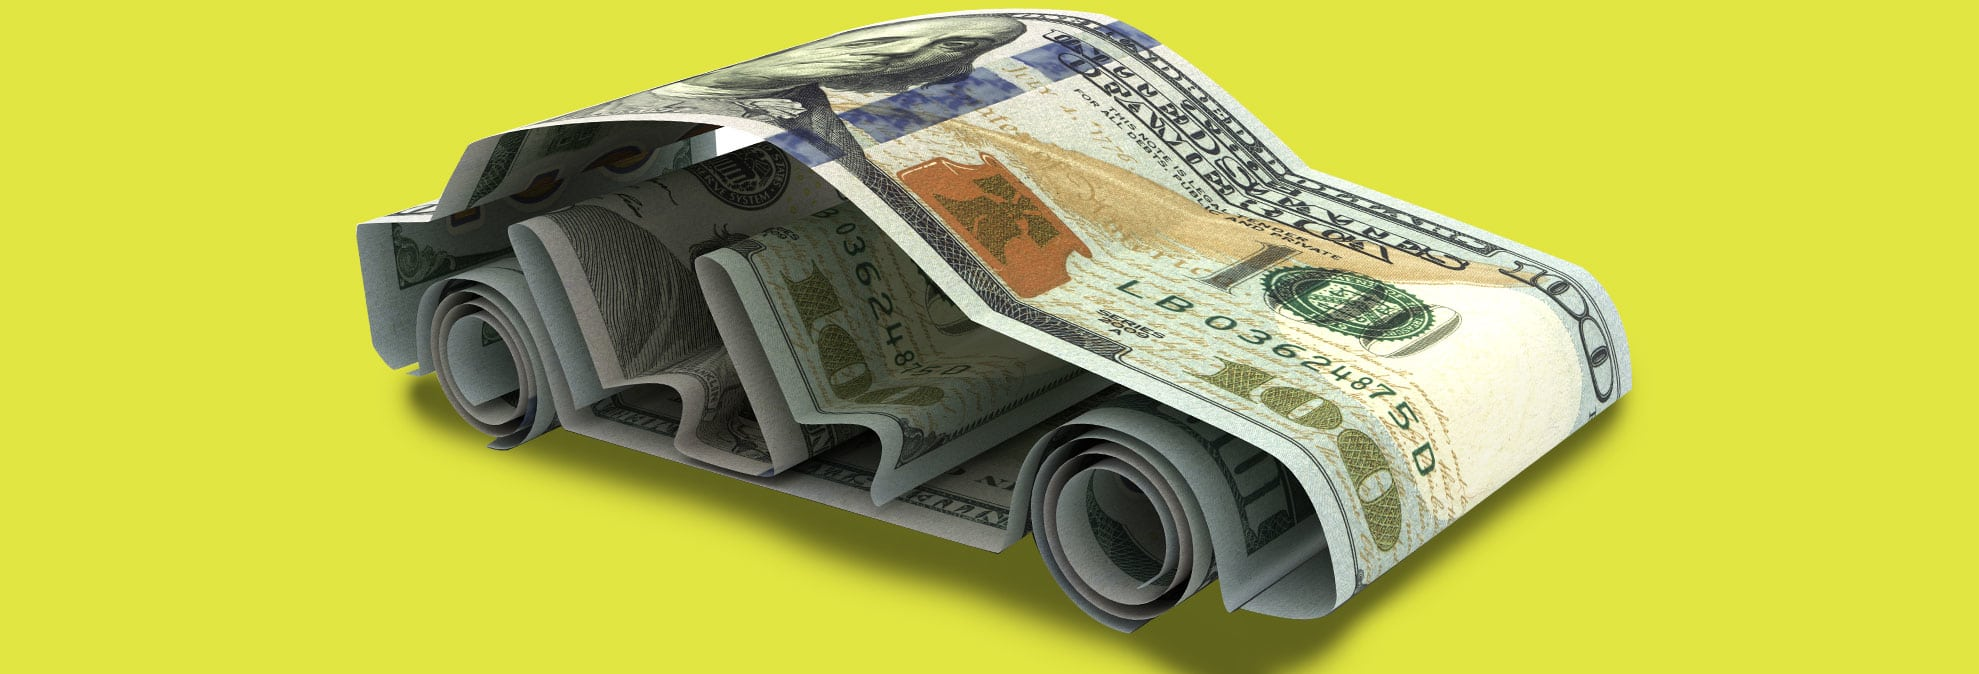 Financing A Car: How Your Credit Score Affects Car Financing